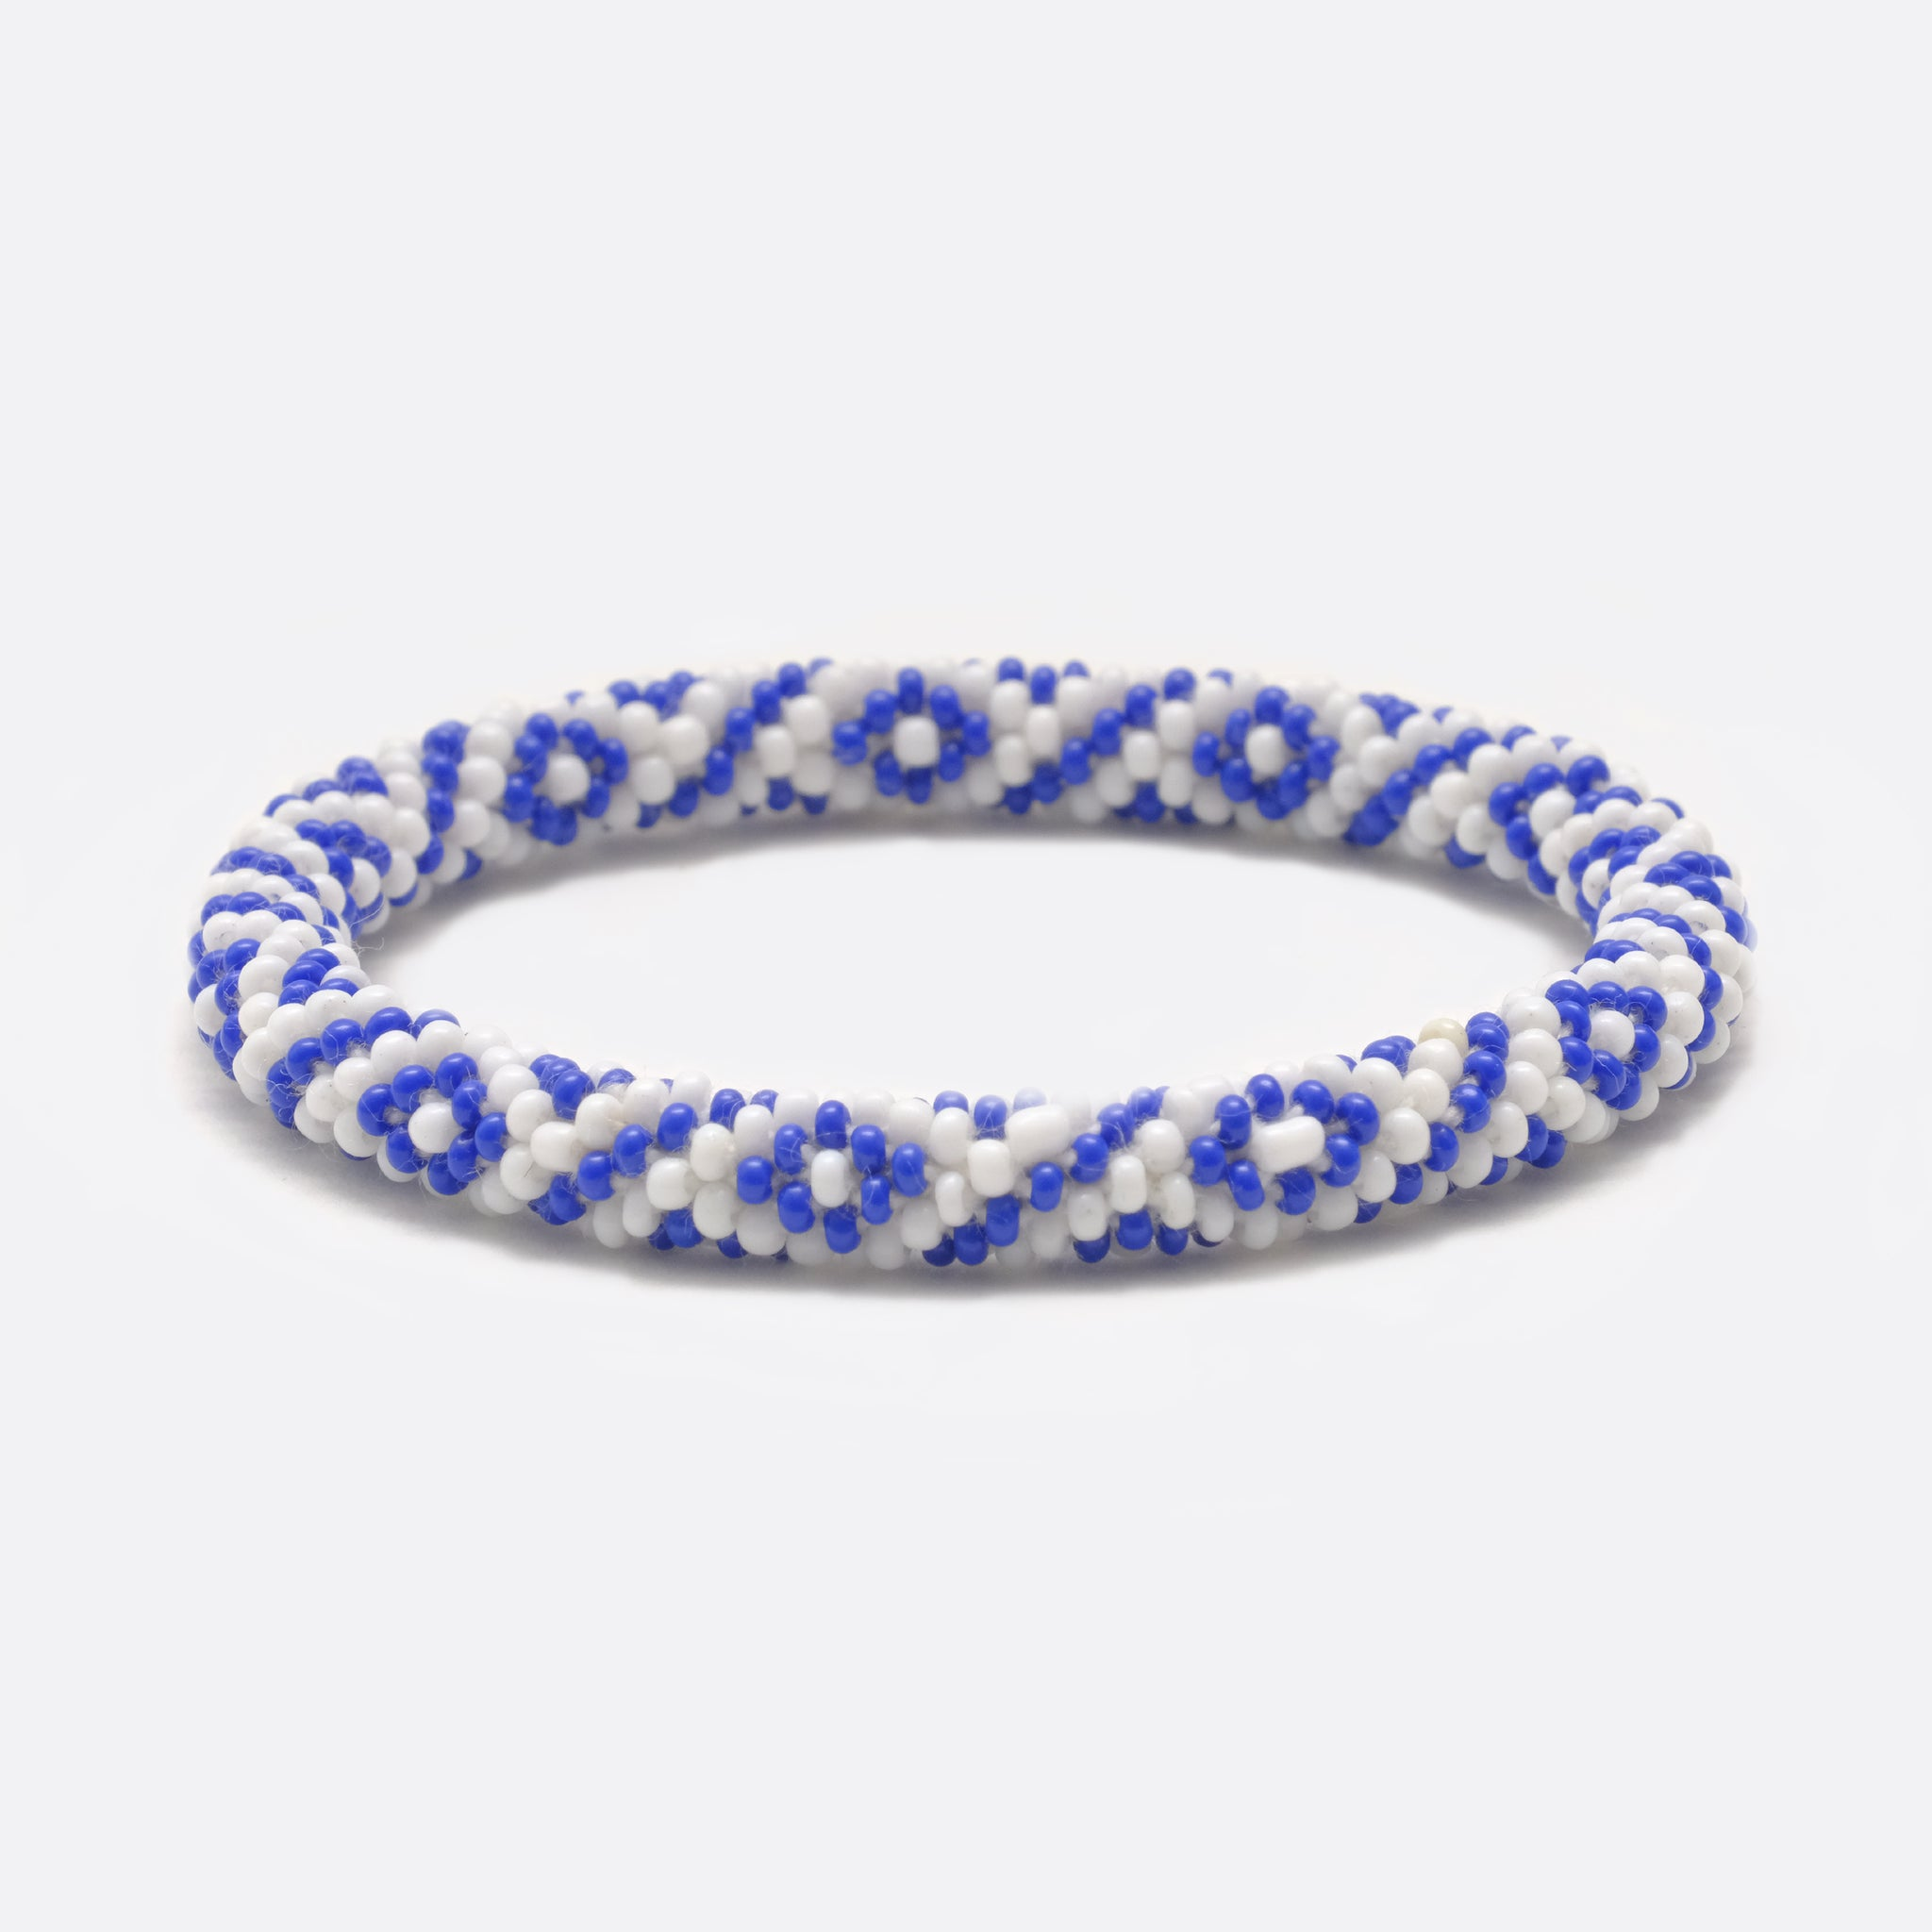 Beaded Bracelet - Blue & White Square